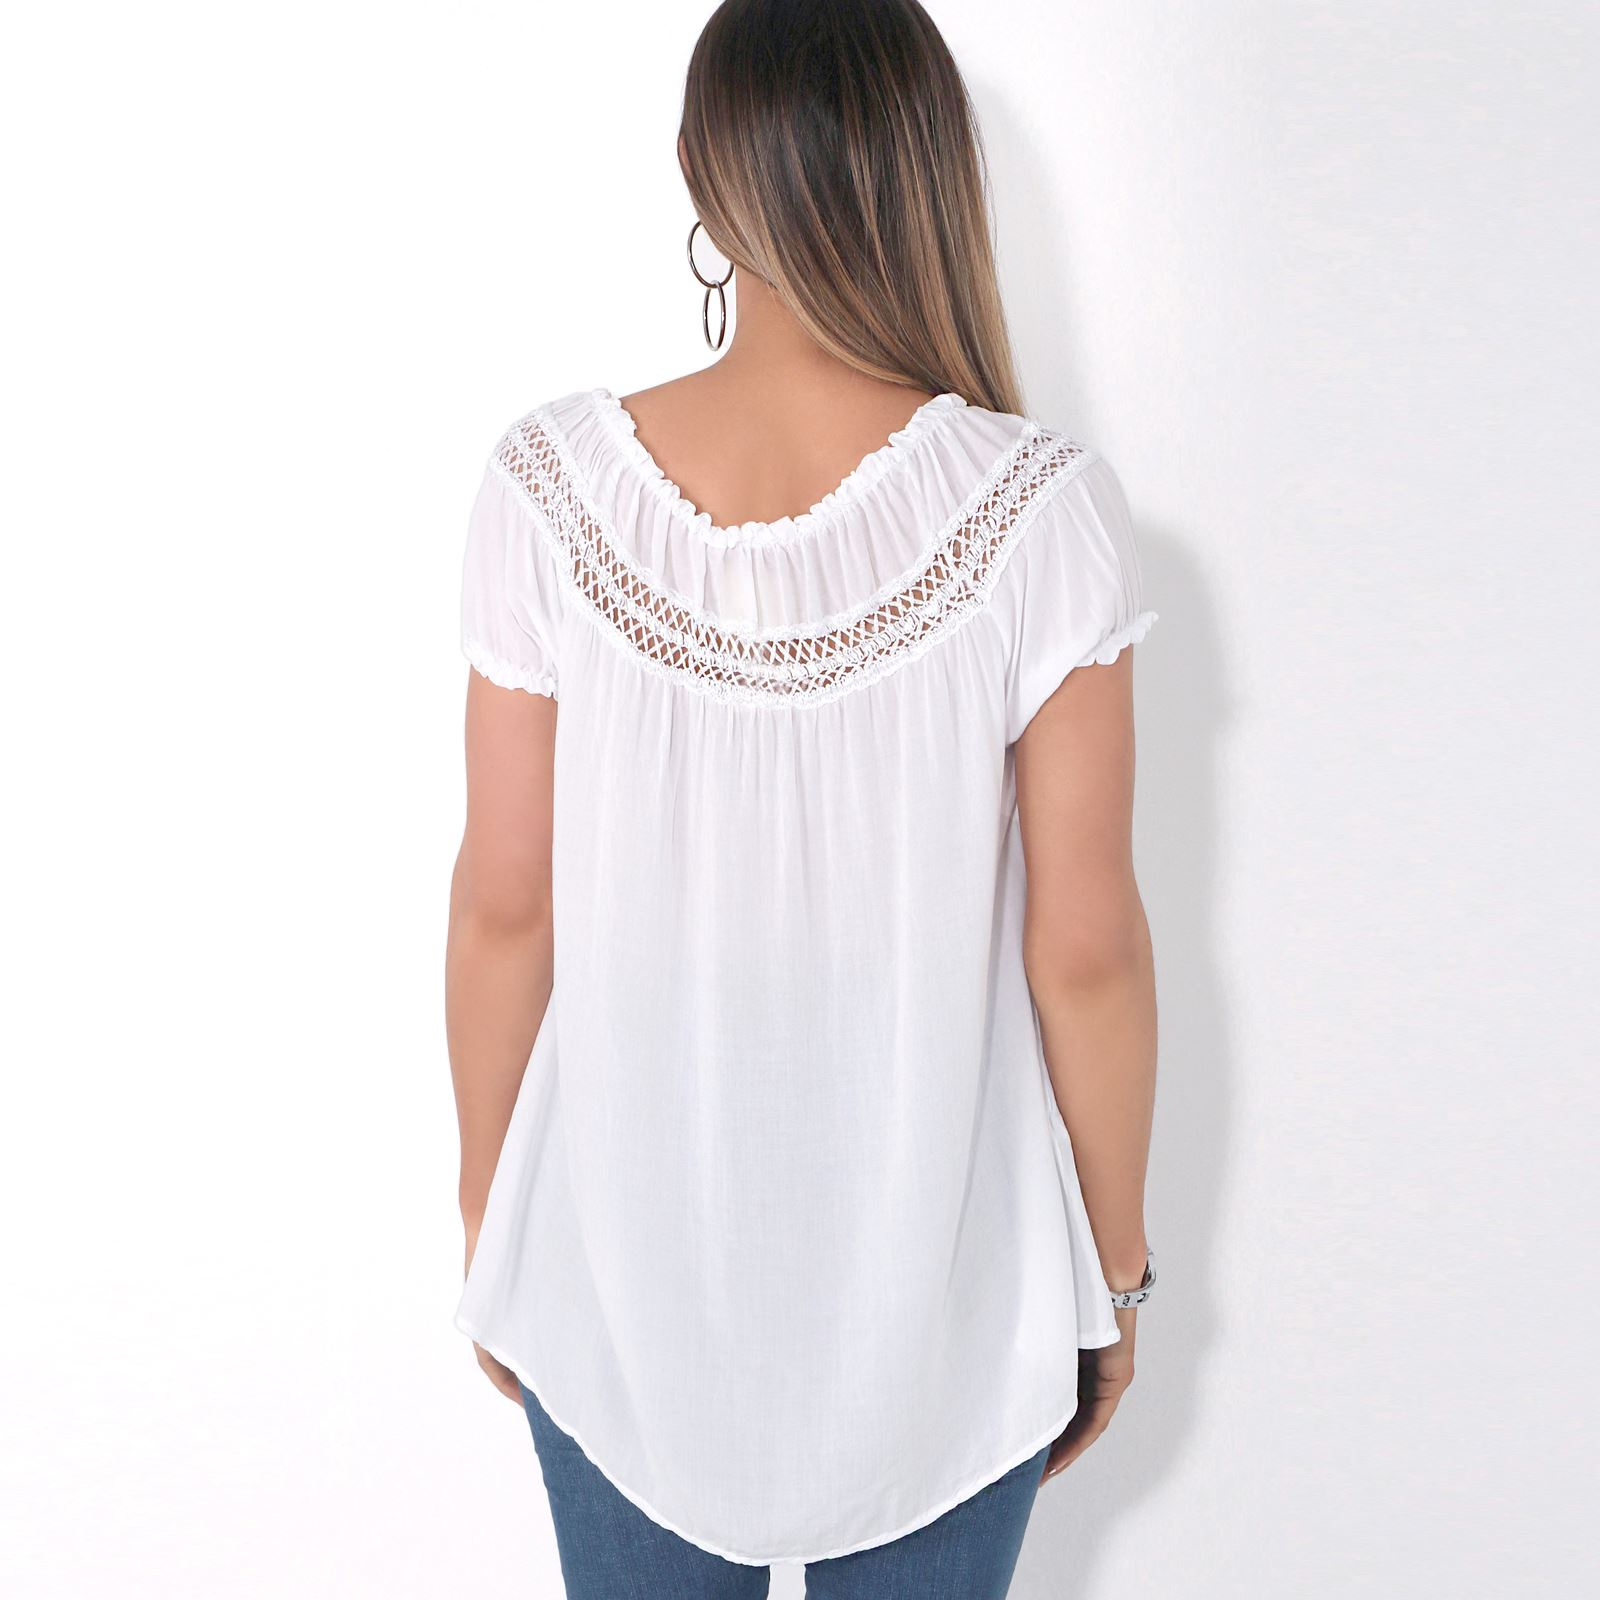 Womens-Off-Shoulder-Blouse-Gypsy-Boho-Cotton-T-Shirt-Top-Tunic-Summer-Loose-Fit thumbnail 15